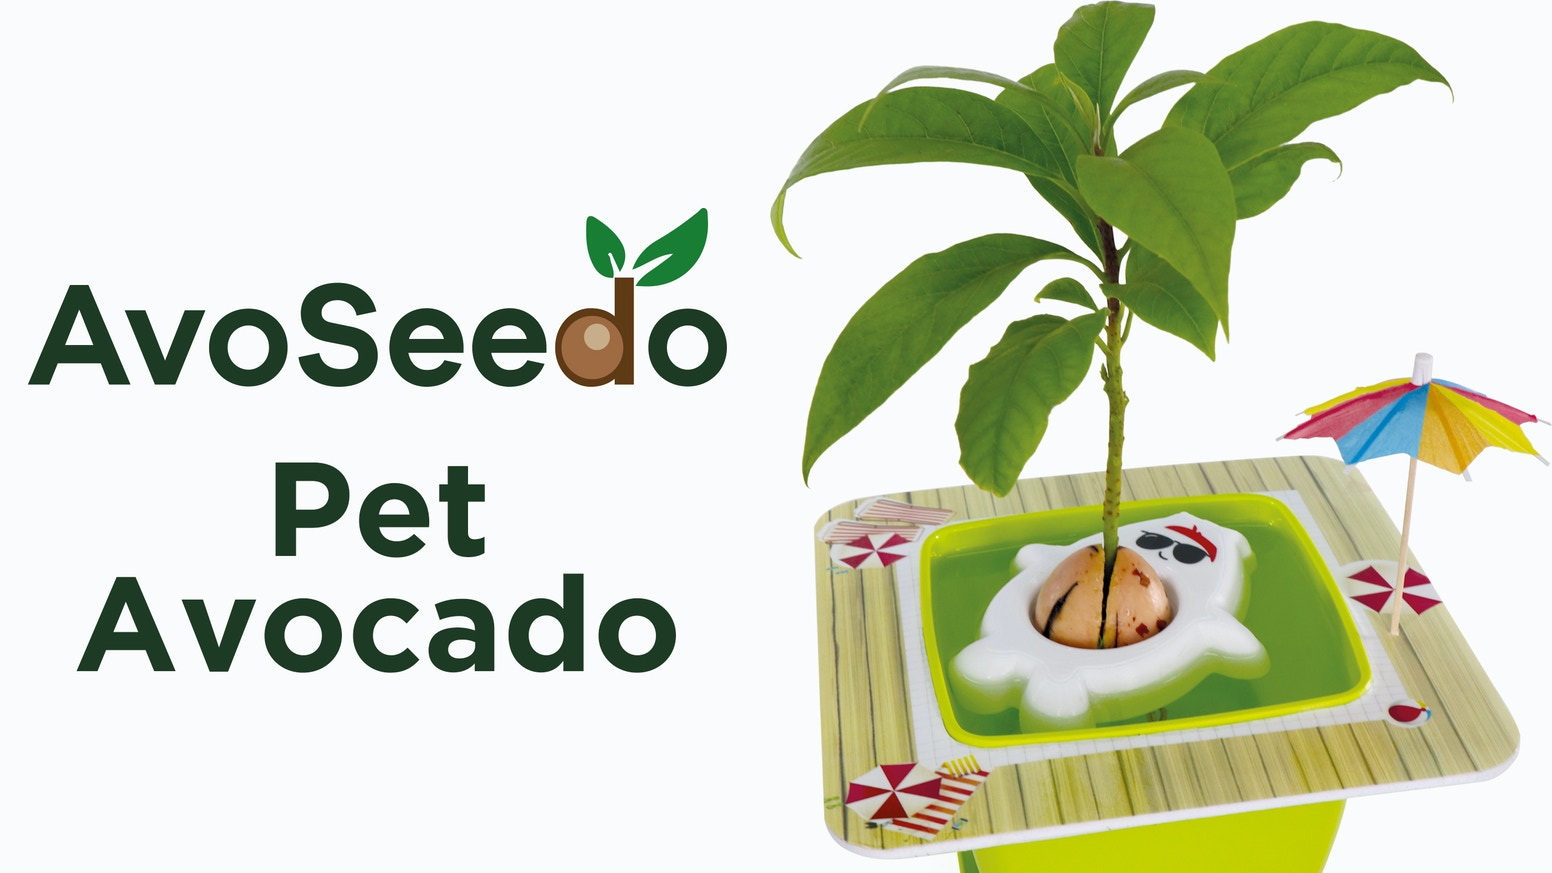 It's unique design makes it the most fun and easiest way to grow your own Avocado Tree at home. Pre-Order yours now!